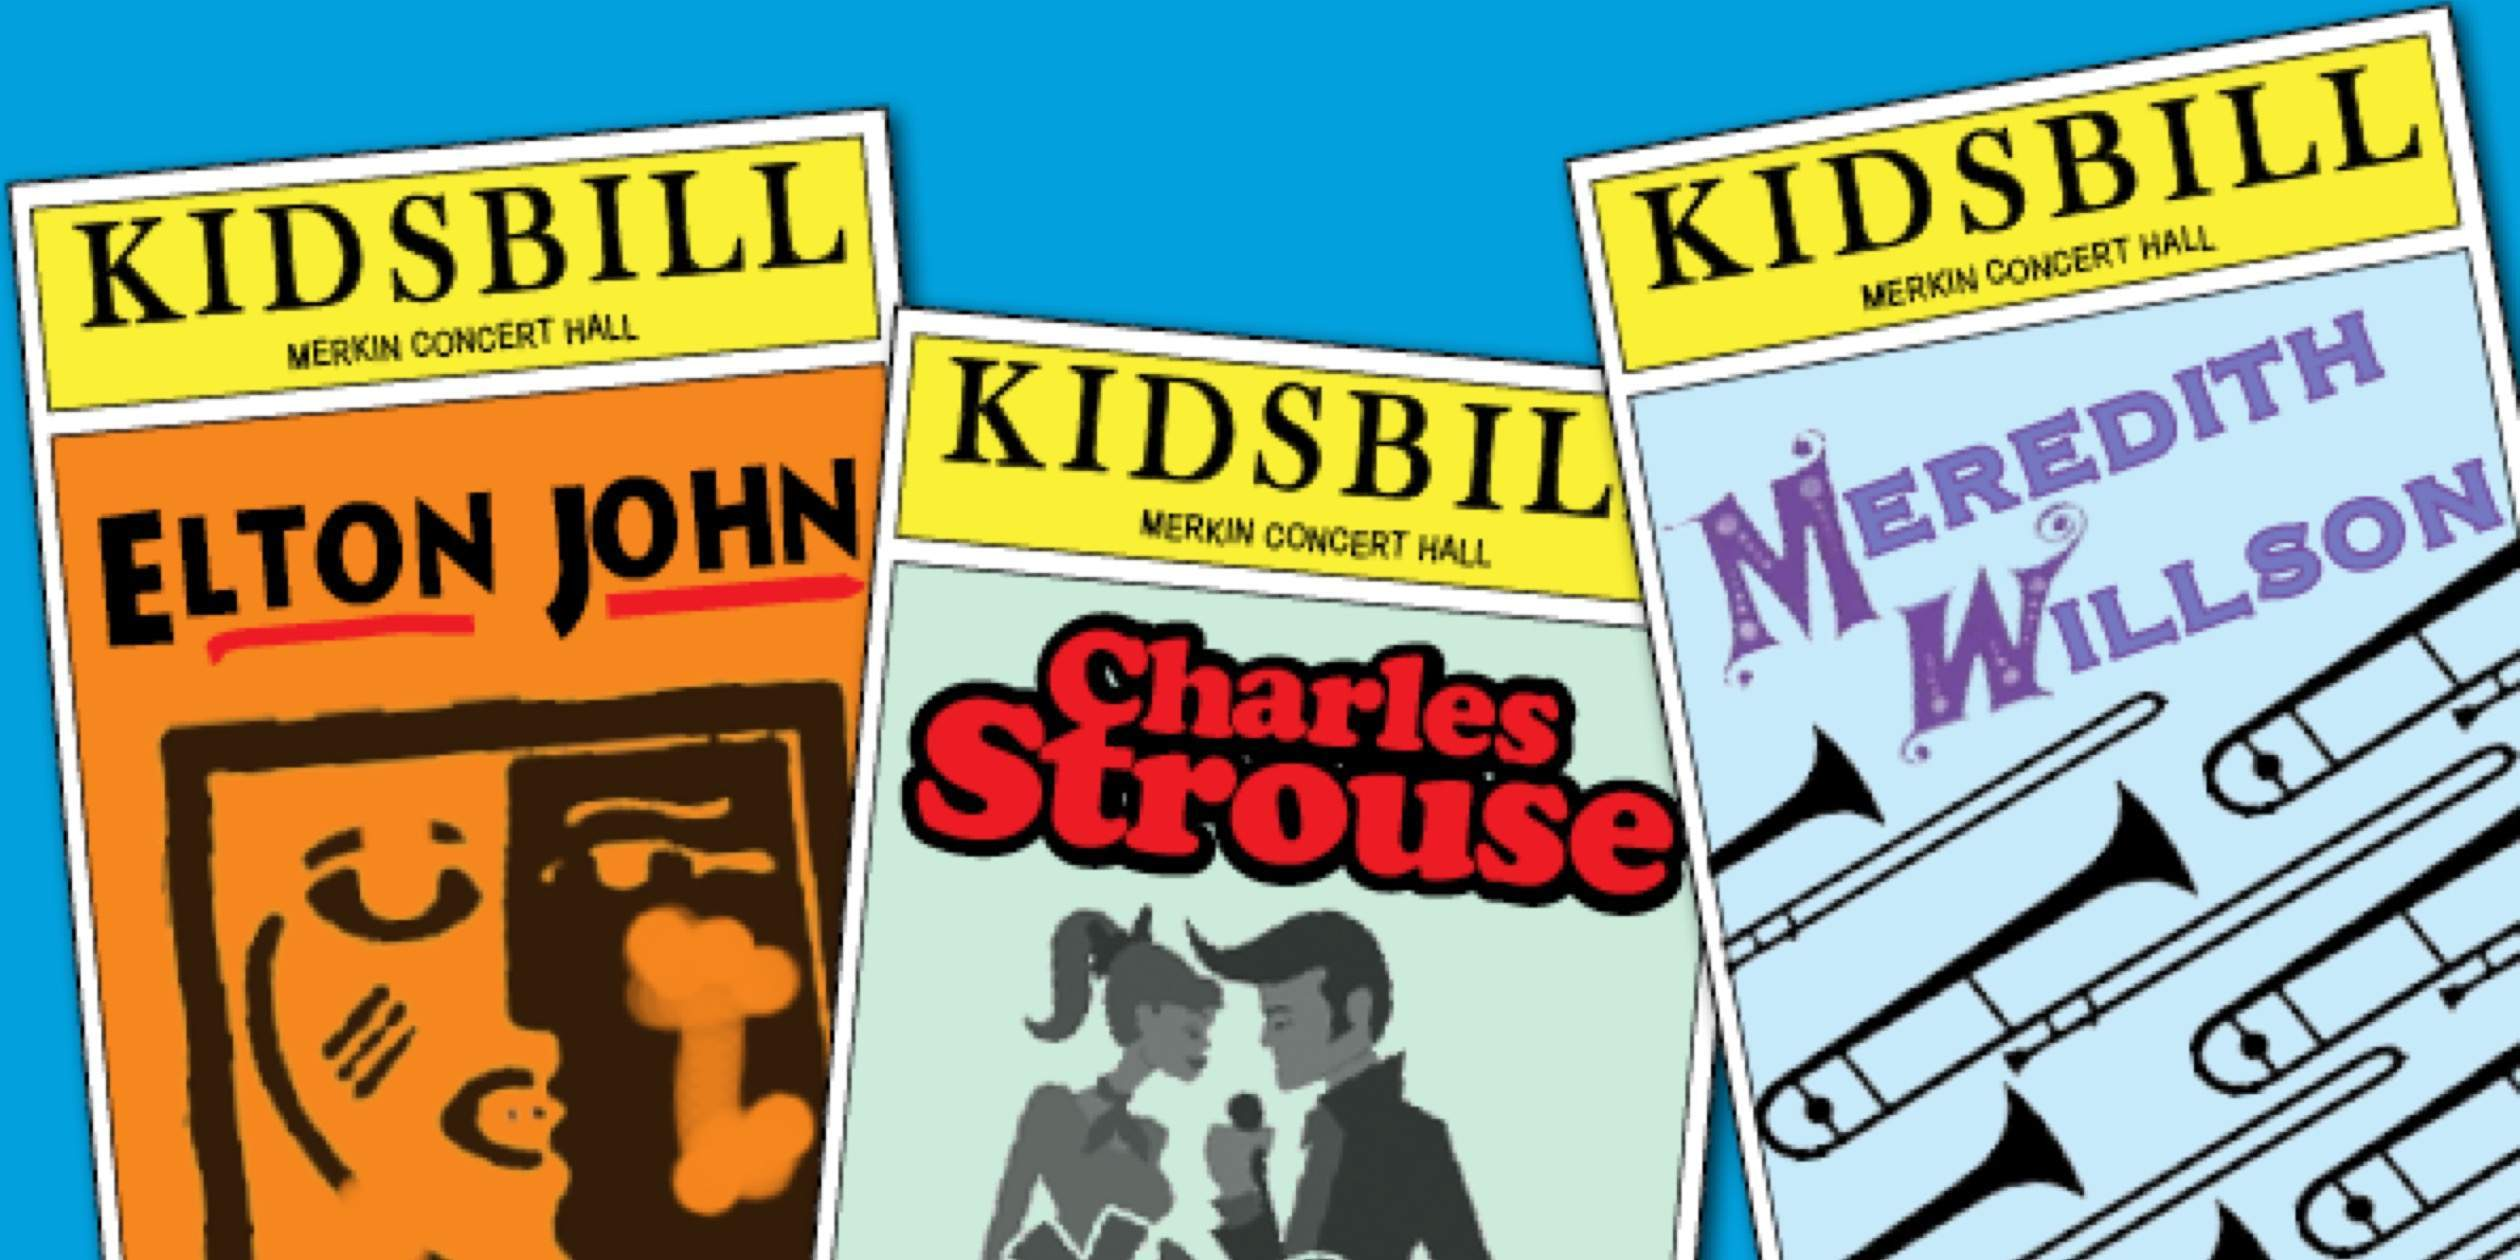 Share the Broadway musicals you love with the kids in your life!